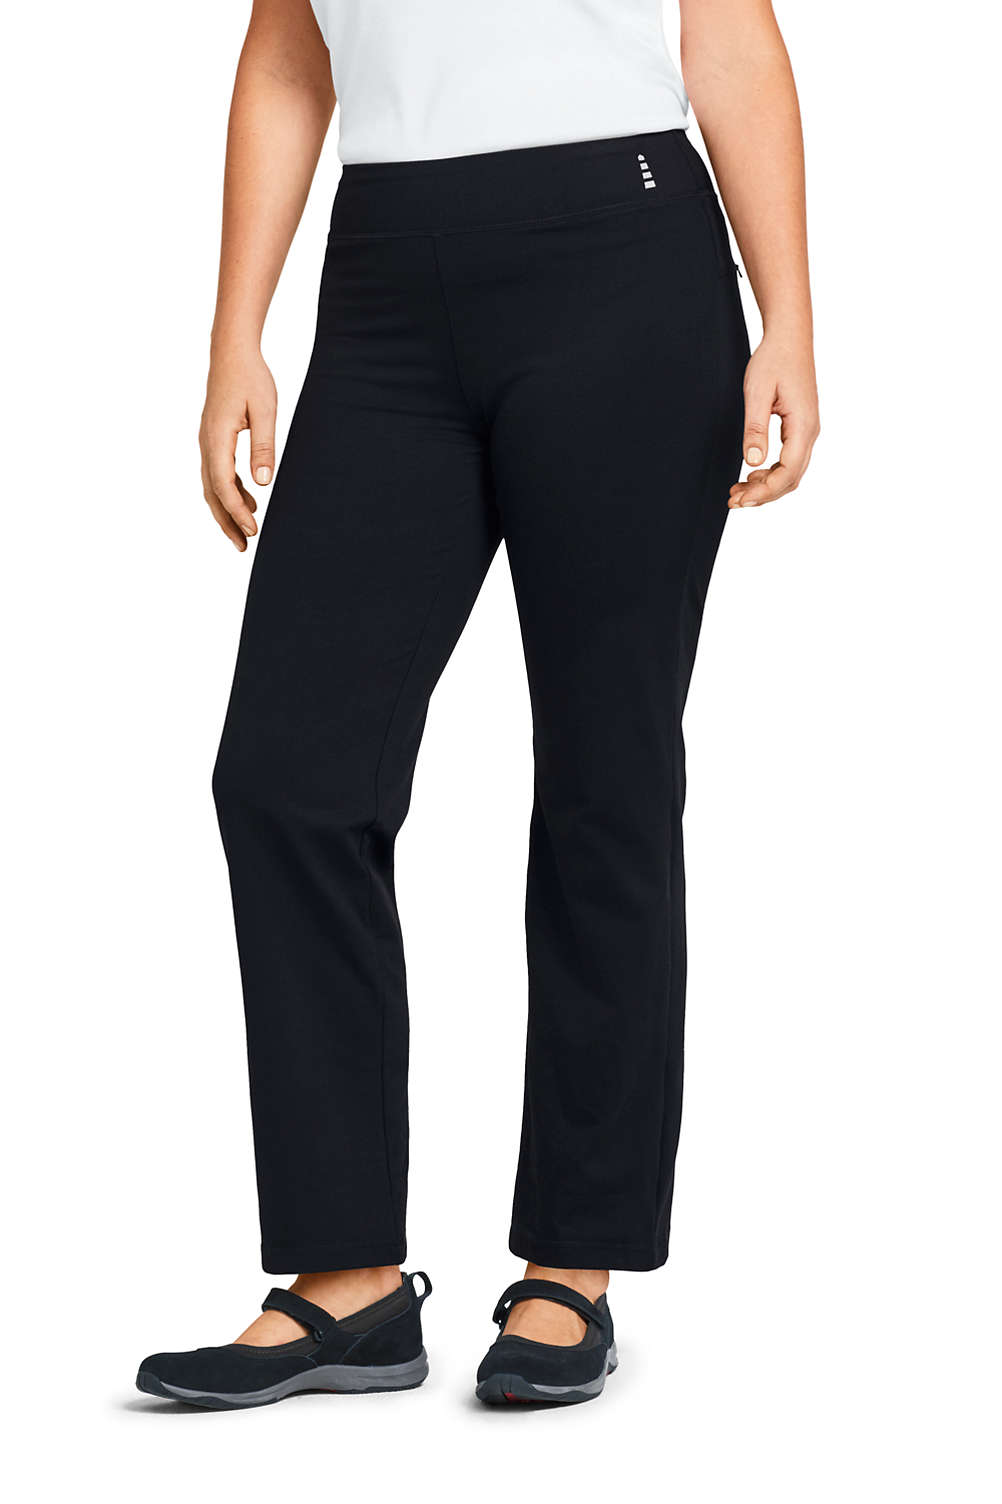 193a1ffe6a Women s Plus Size Active Yoga Pants from Lands  End